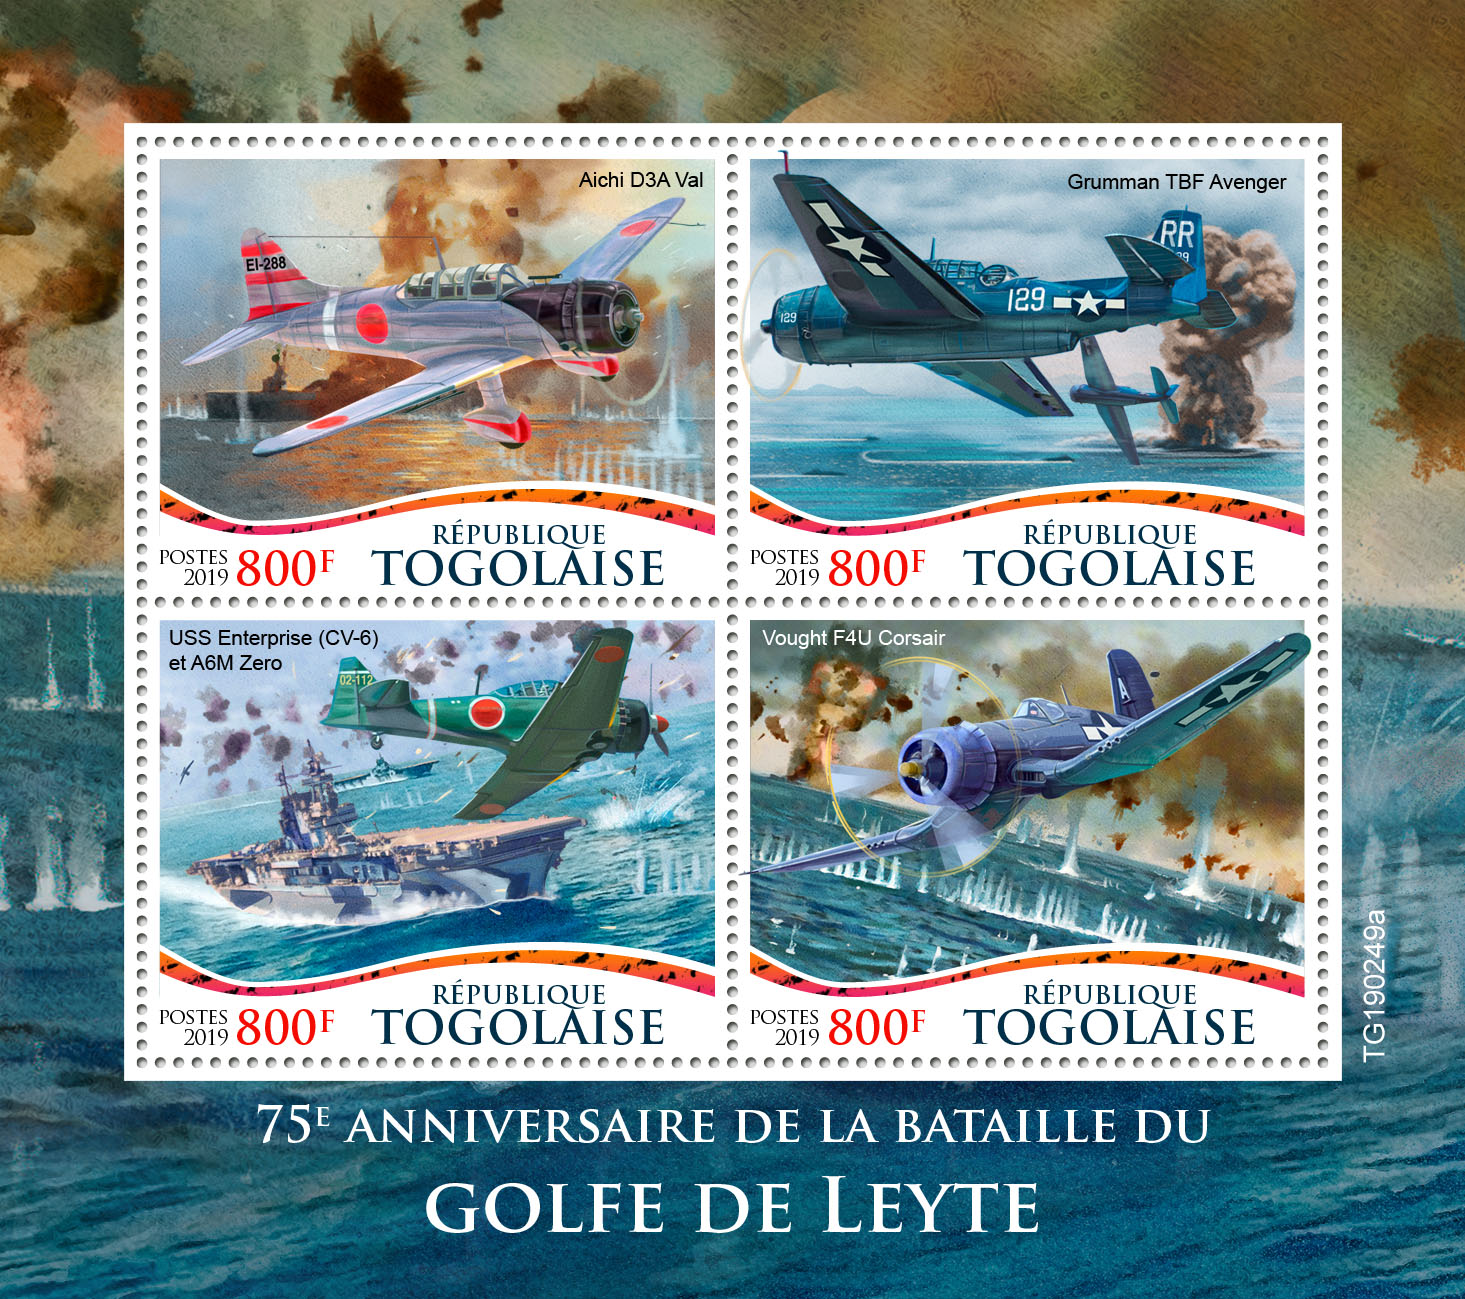 Battle of Leyte Gulf - Issue of Togo postage stamps